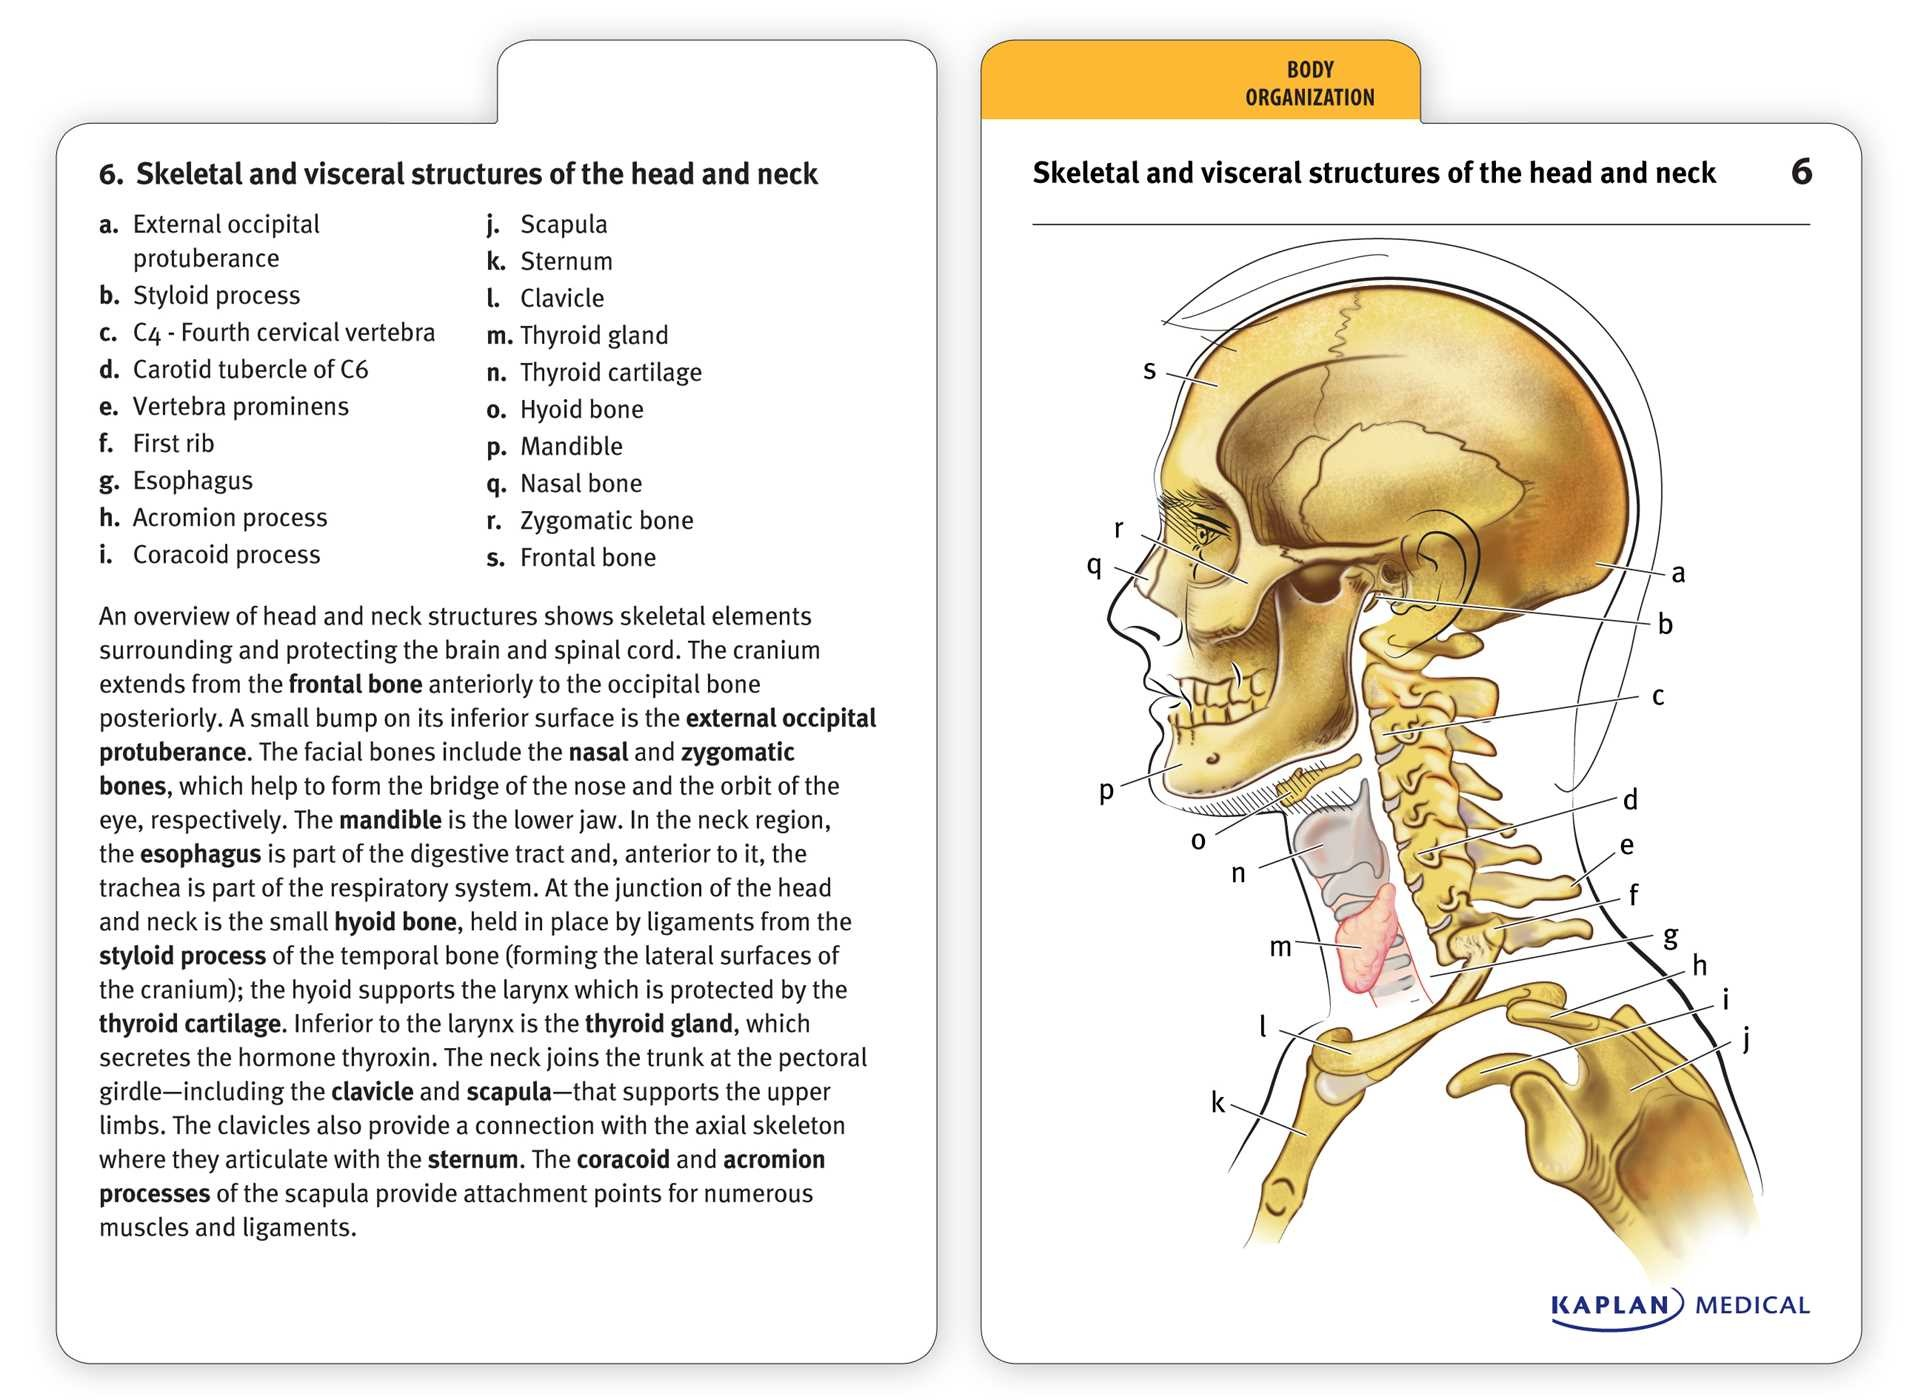 Anatomy-flashcards-9781607149842.in03